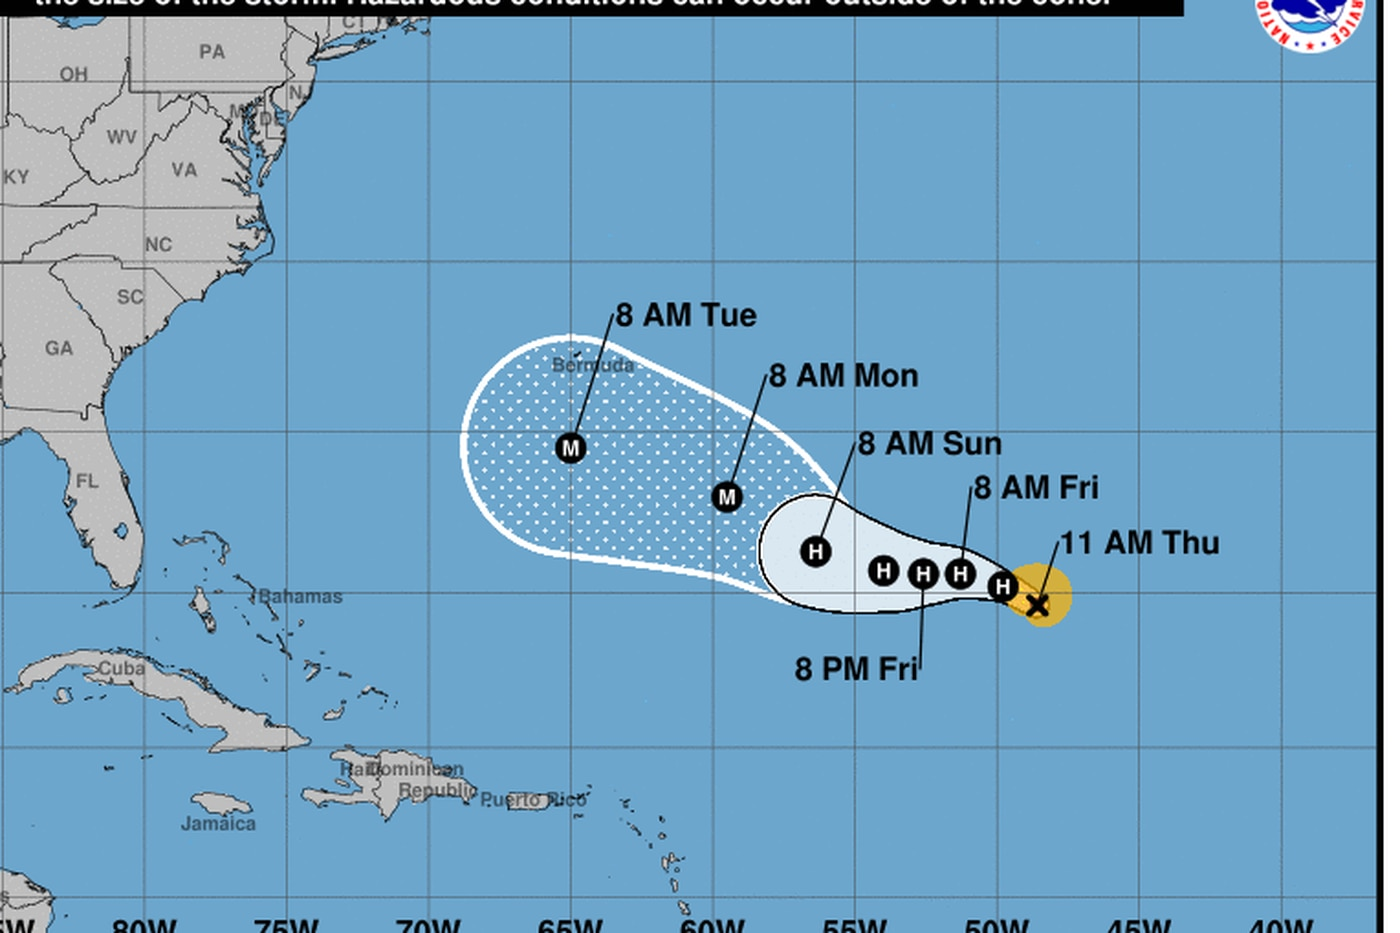 Major Hurricane Likely to Hit East Coast Late This Week